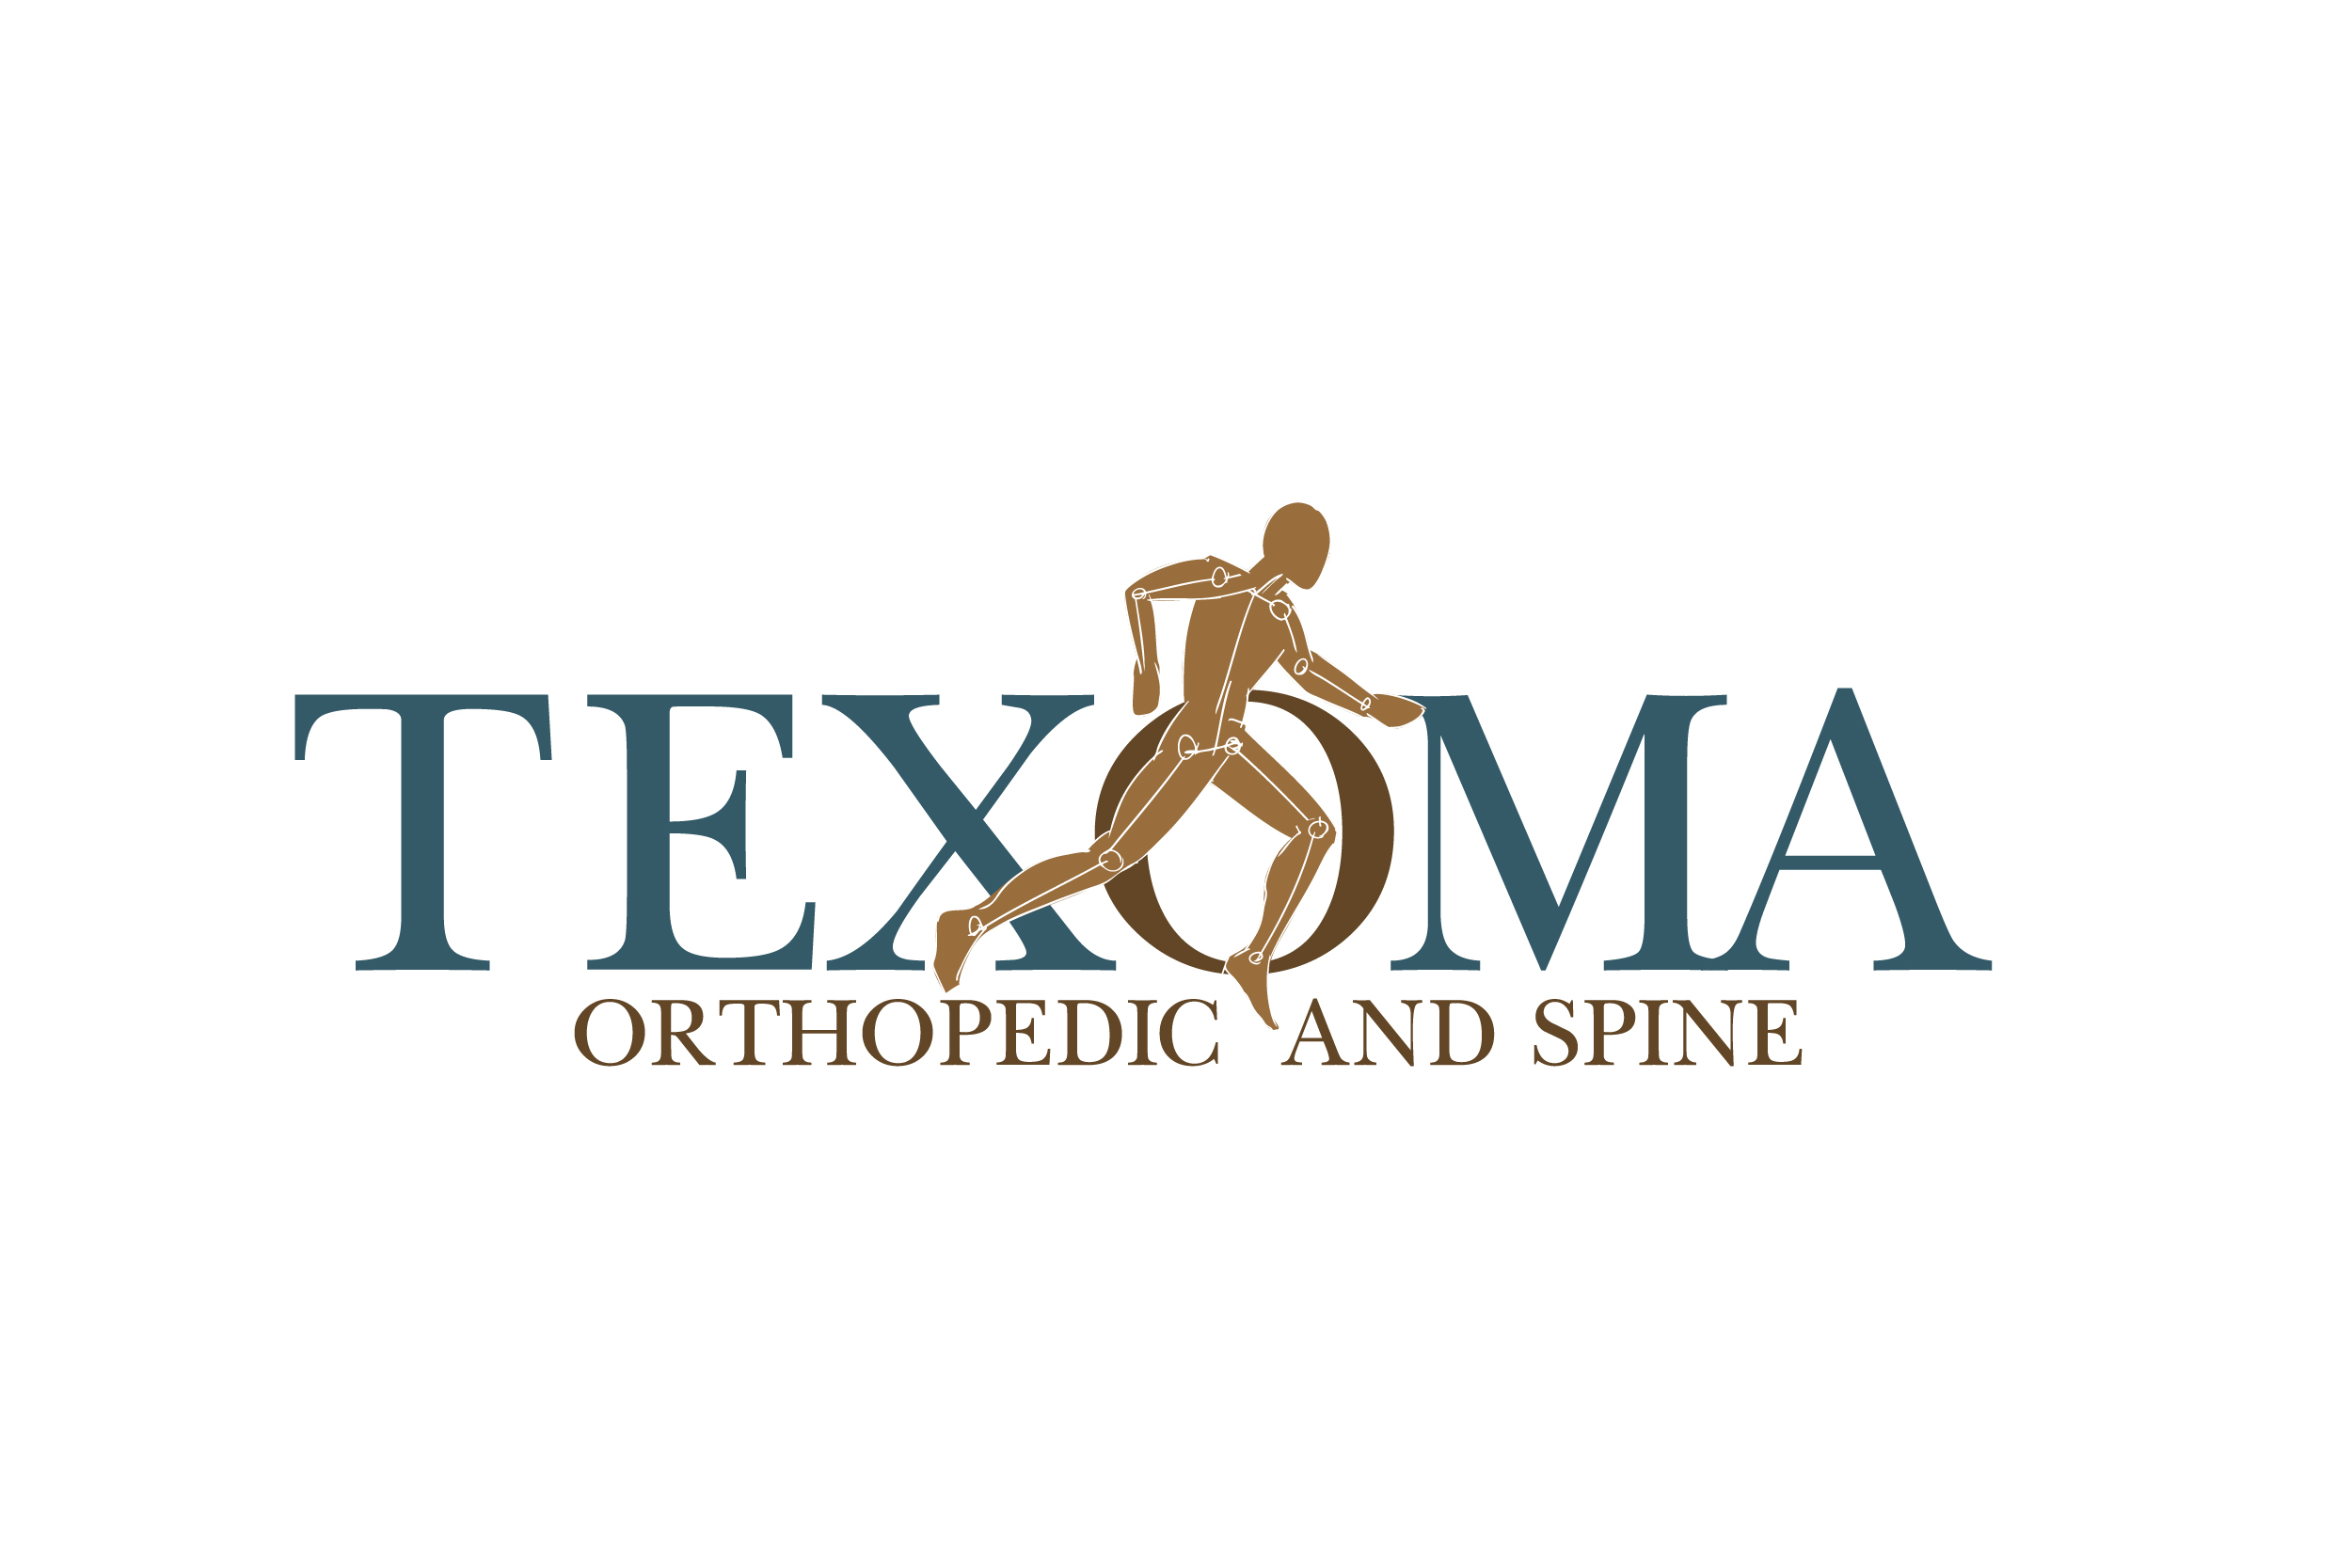 Texoma Orthopedic and Spine